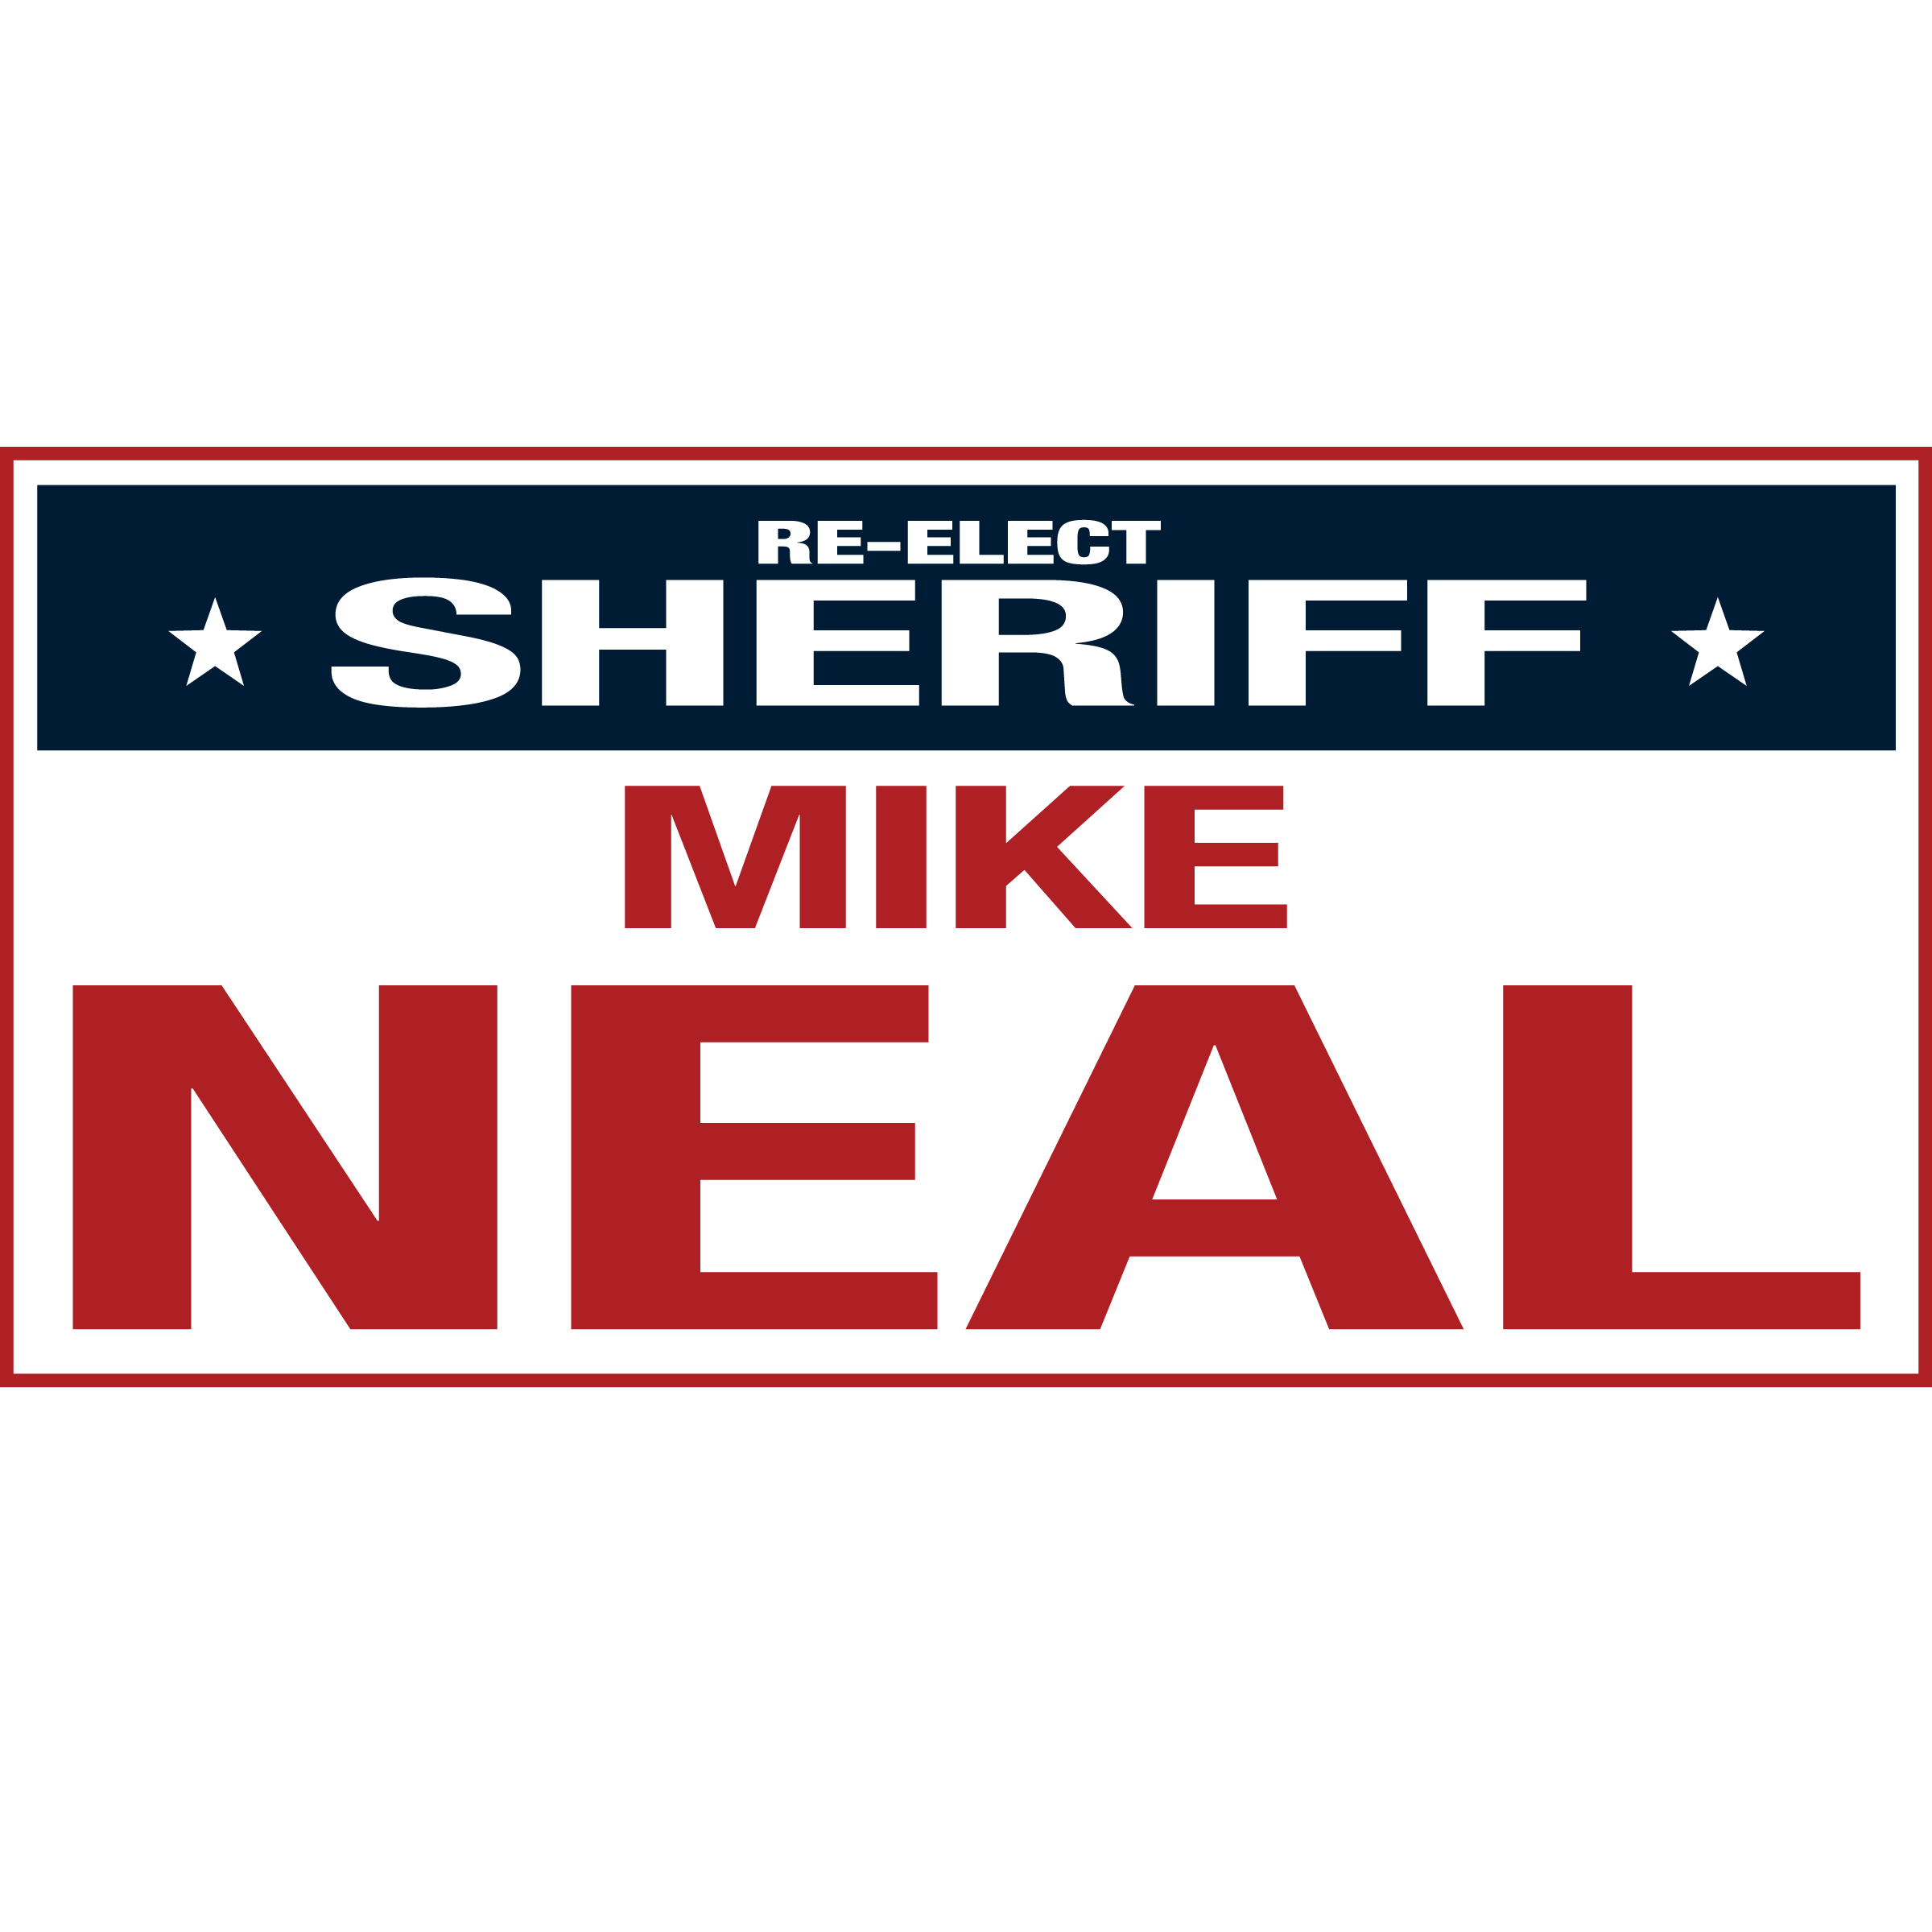 Mike Neal for Sheriff 2018 - Rhea County, Tennessee